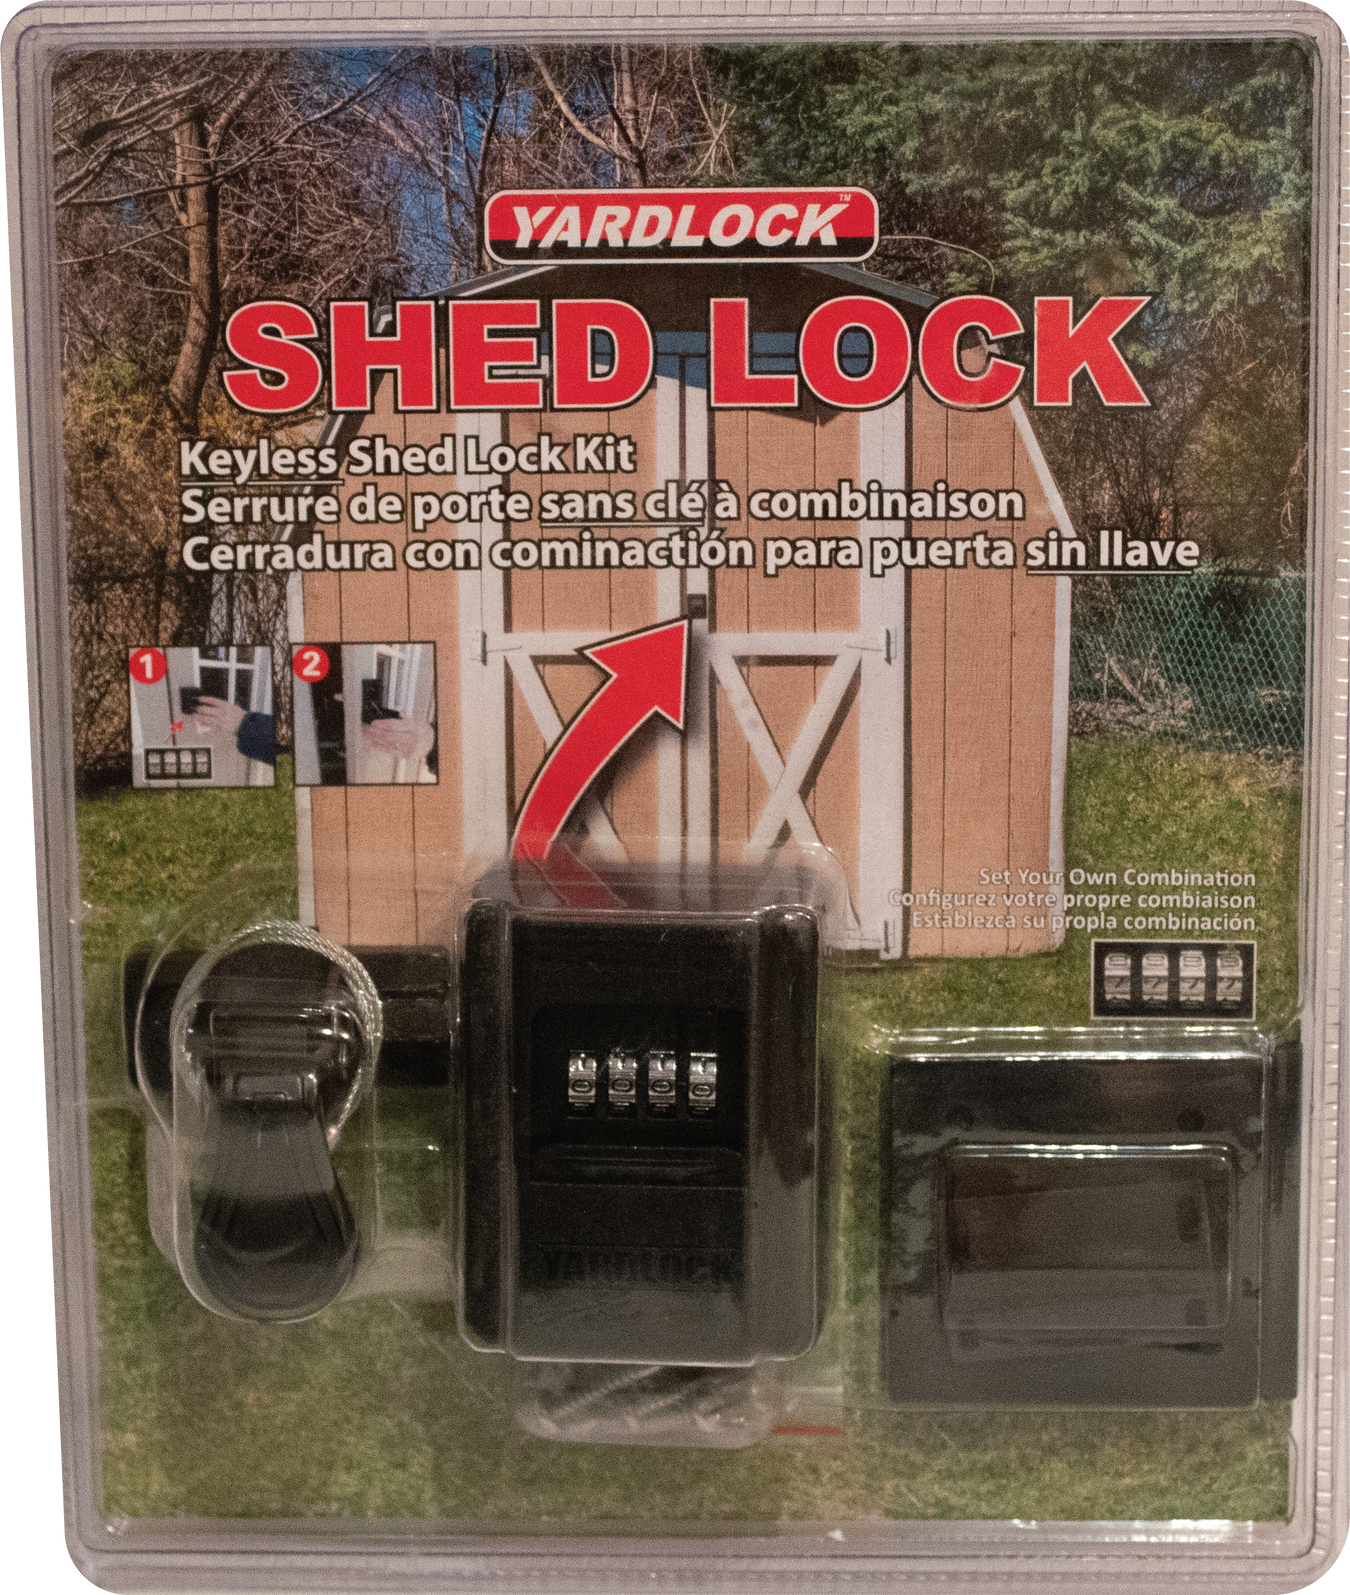 SHED LOCK